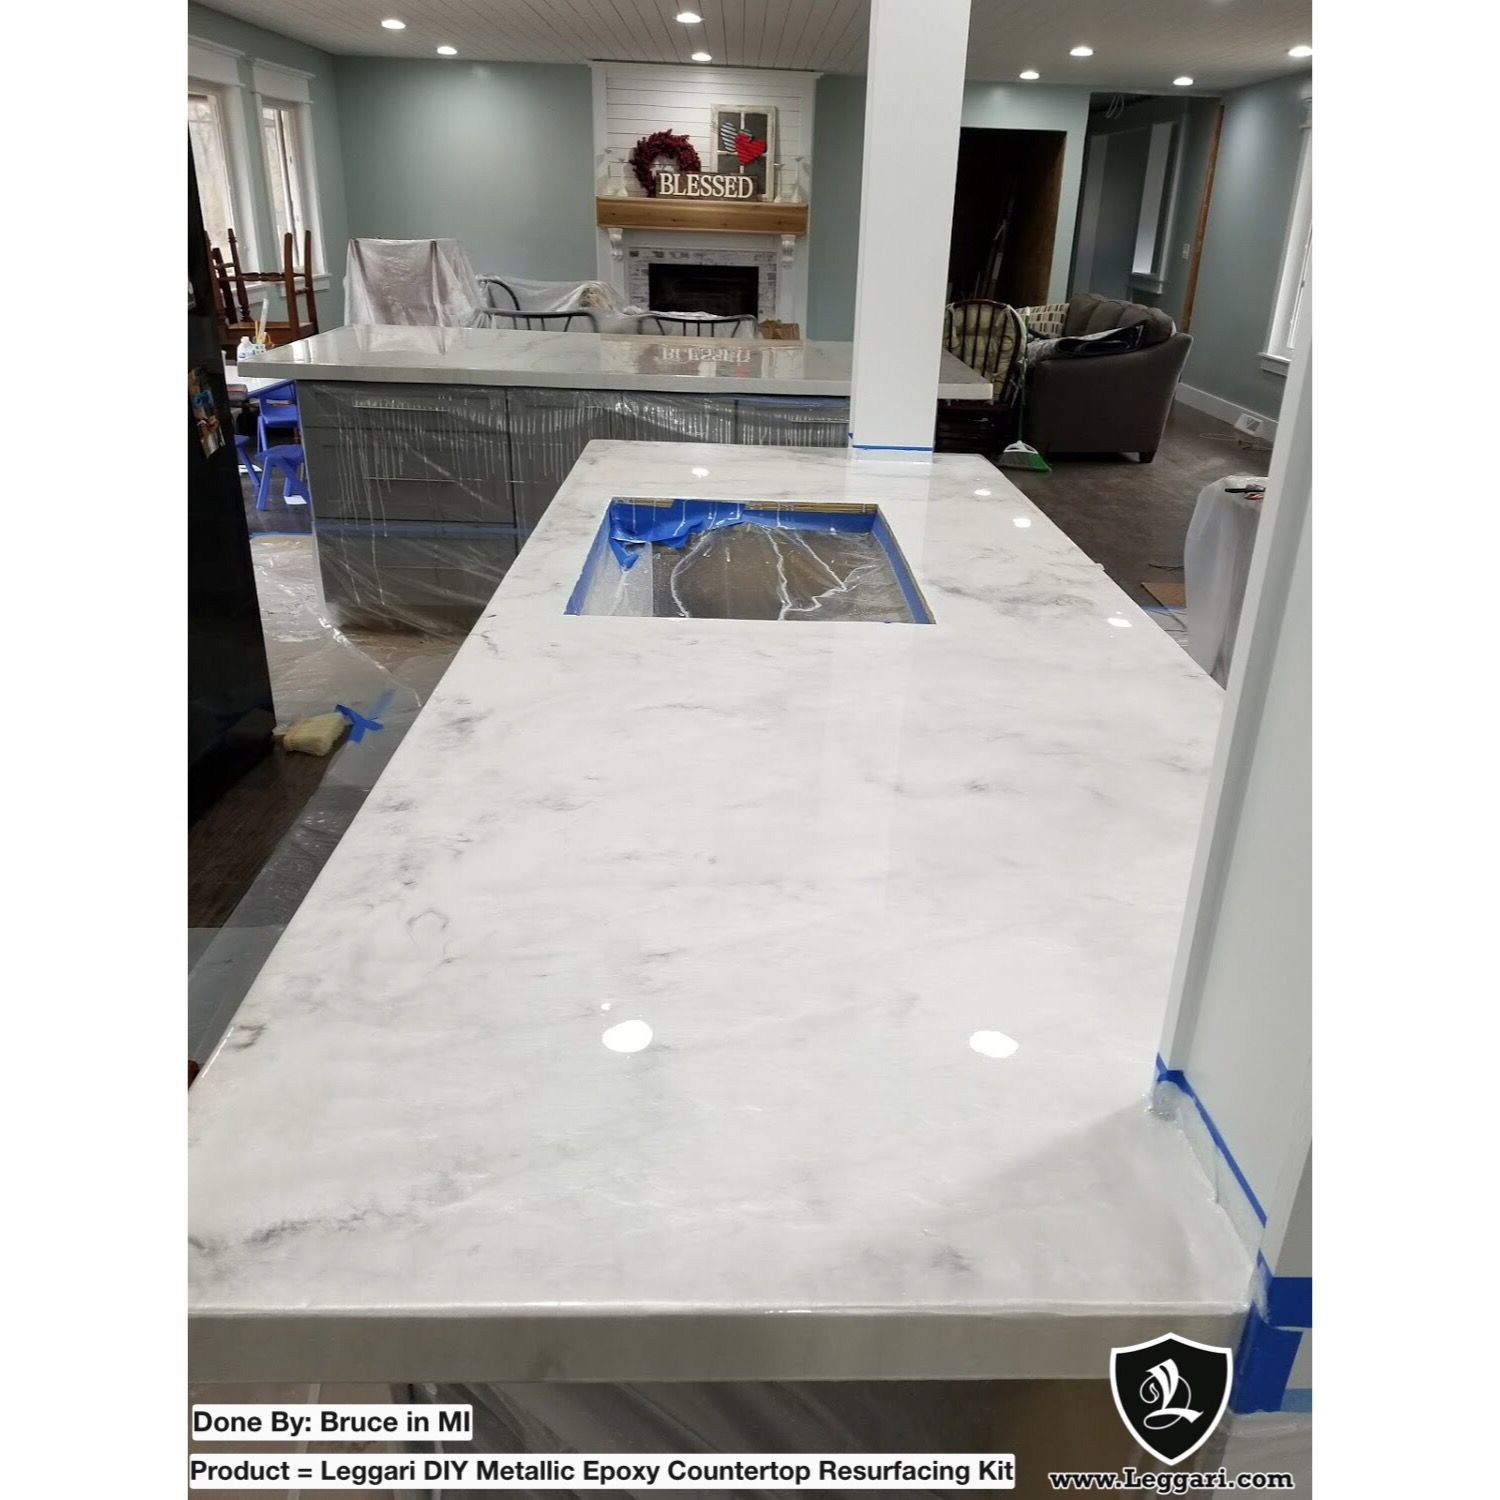 Kitchen Remodel Epoxy Countertop This Home Is Stunning Leggari Customer Bruce Built His Counter Kitchen Remodel Countertops Diy Countertops Countertop Kit